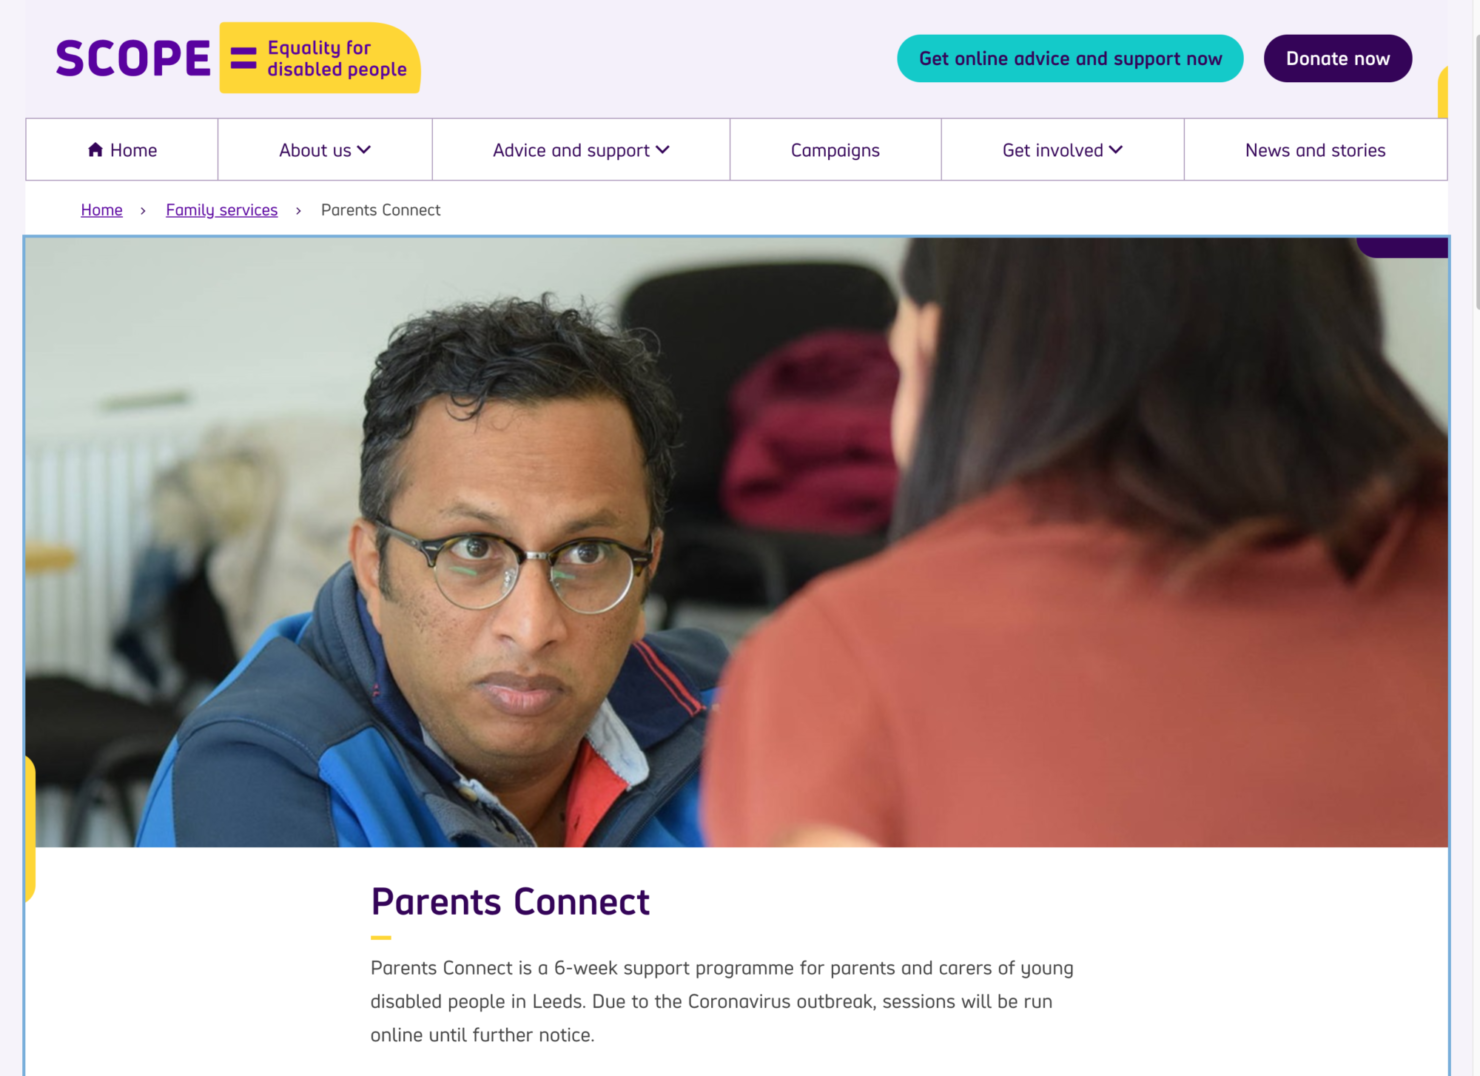 A screenshot showing the Parents Connect page on the Scope website